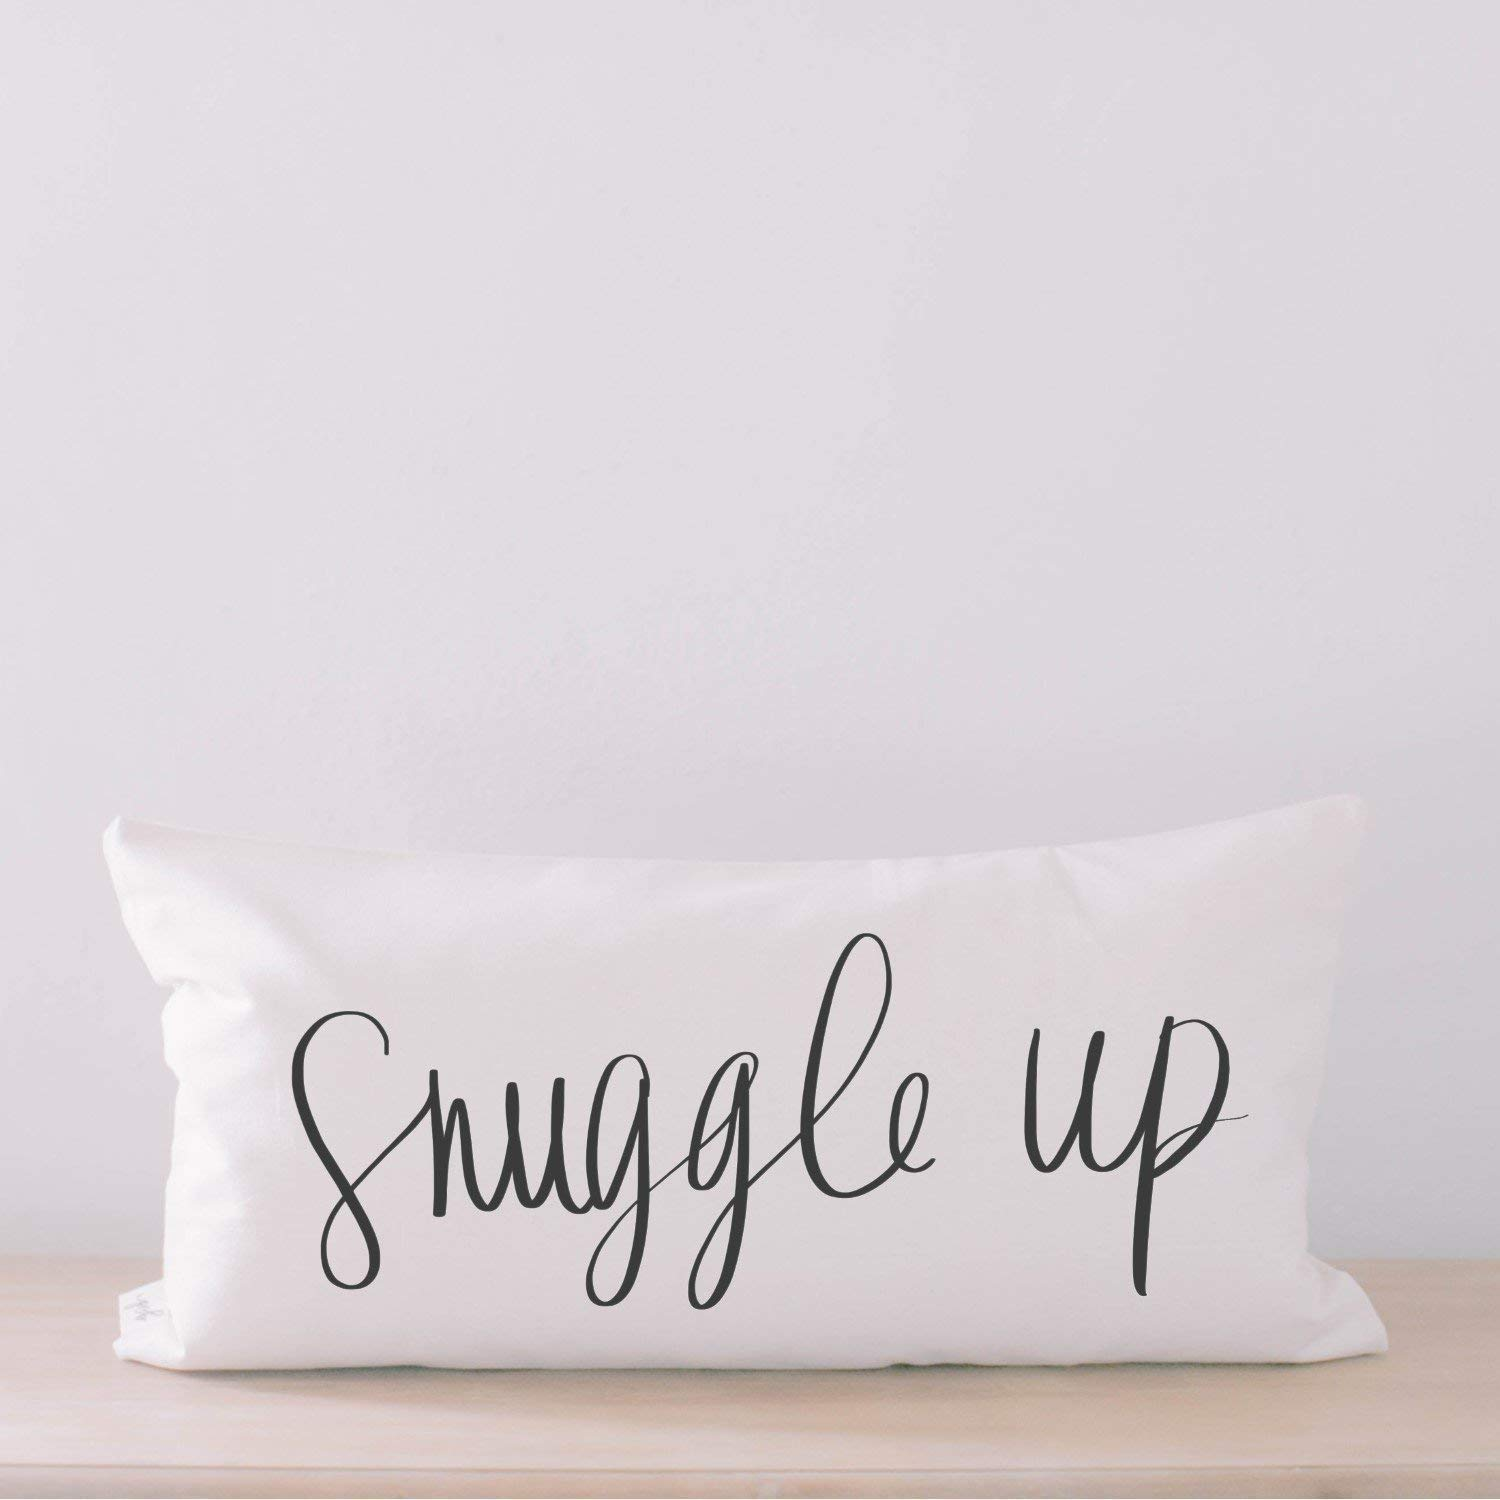 Lumbar Pillow - Snuggle Up, Handmade in the USA, calligraphy, home decor, wedding gift, engagement present, housewarming gift, cushion cover, throw pillow